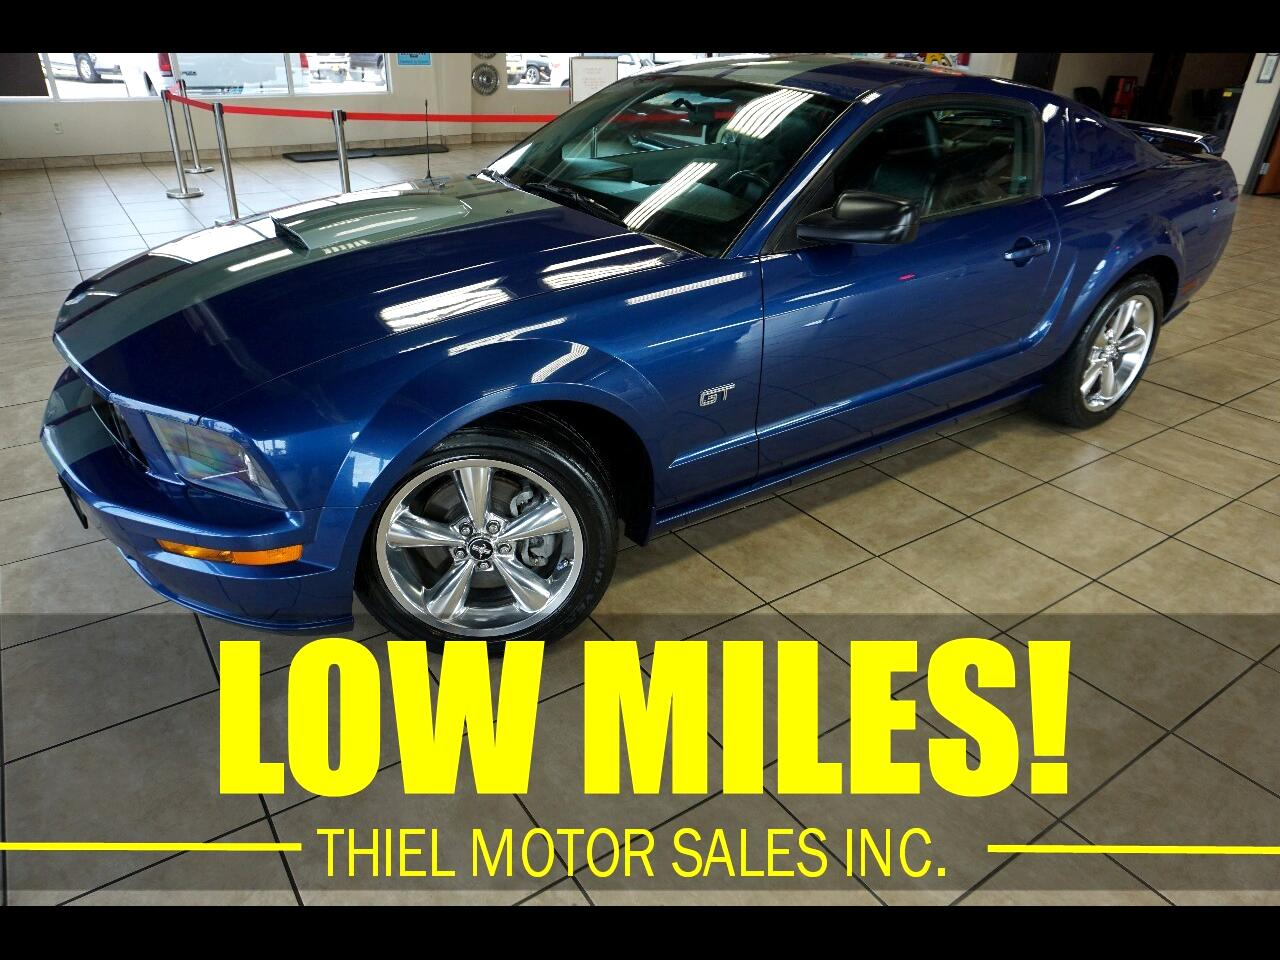 Ford Mustang GT Premium Coupe 2008